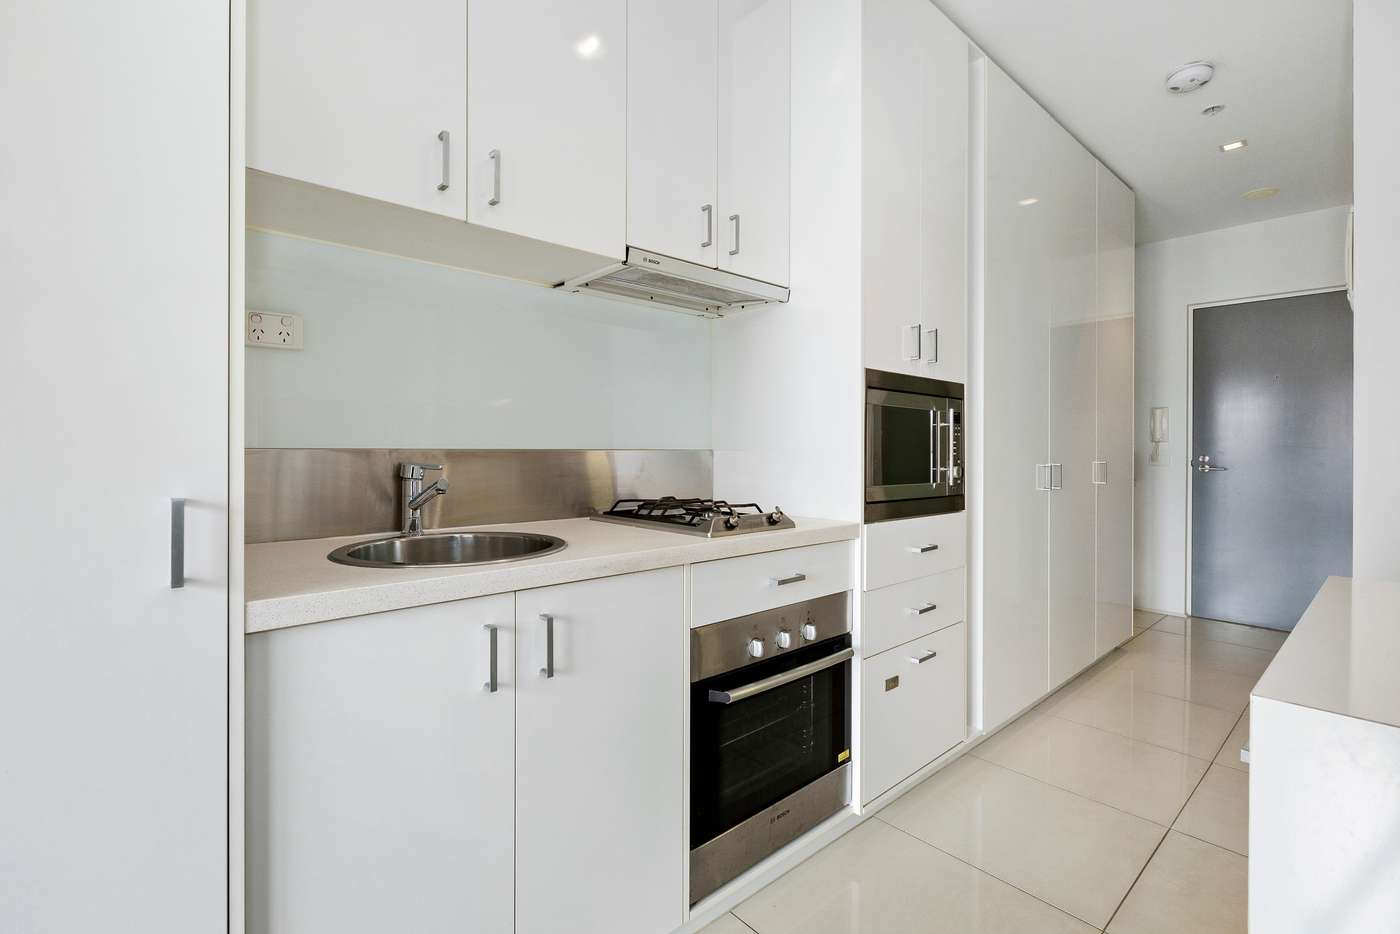 Main view of Homely apartment listing, 214/153B High Street, Prahran VIC 3181